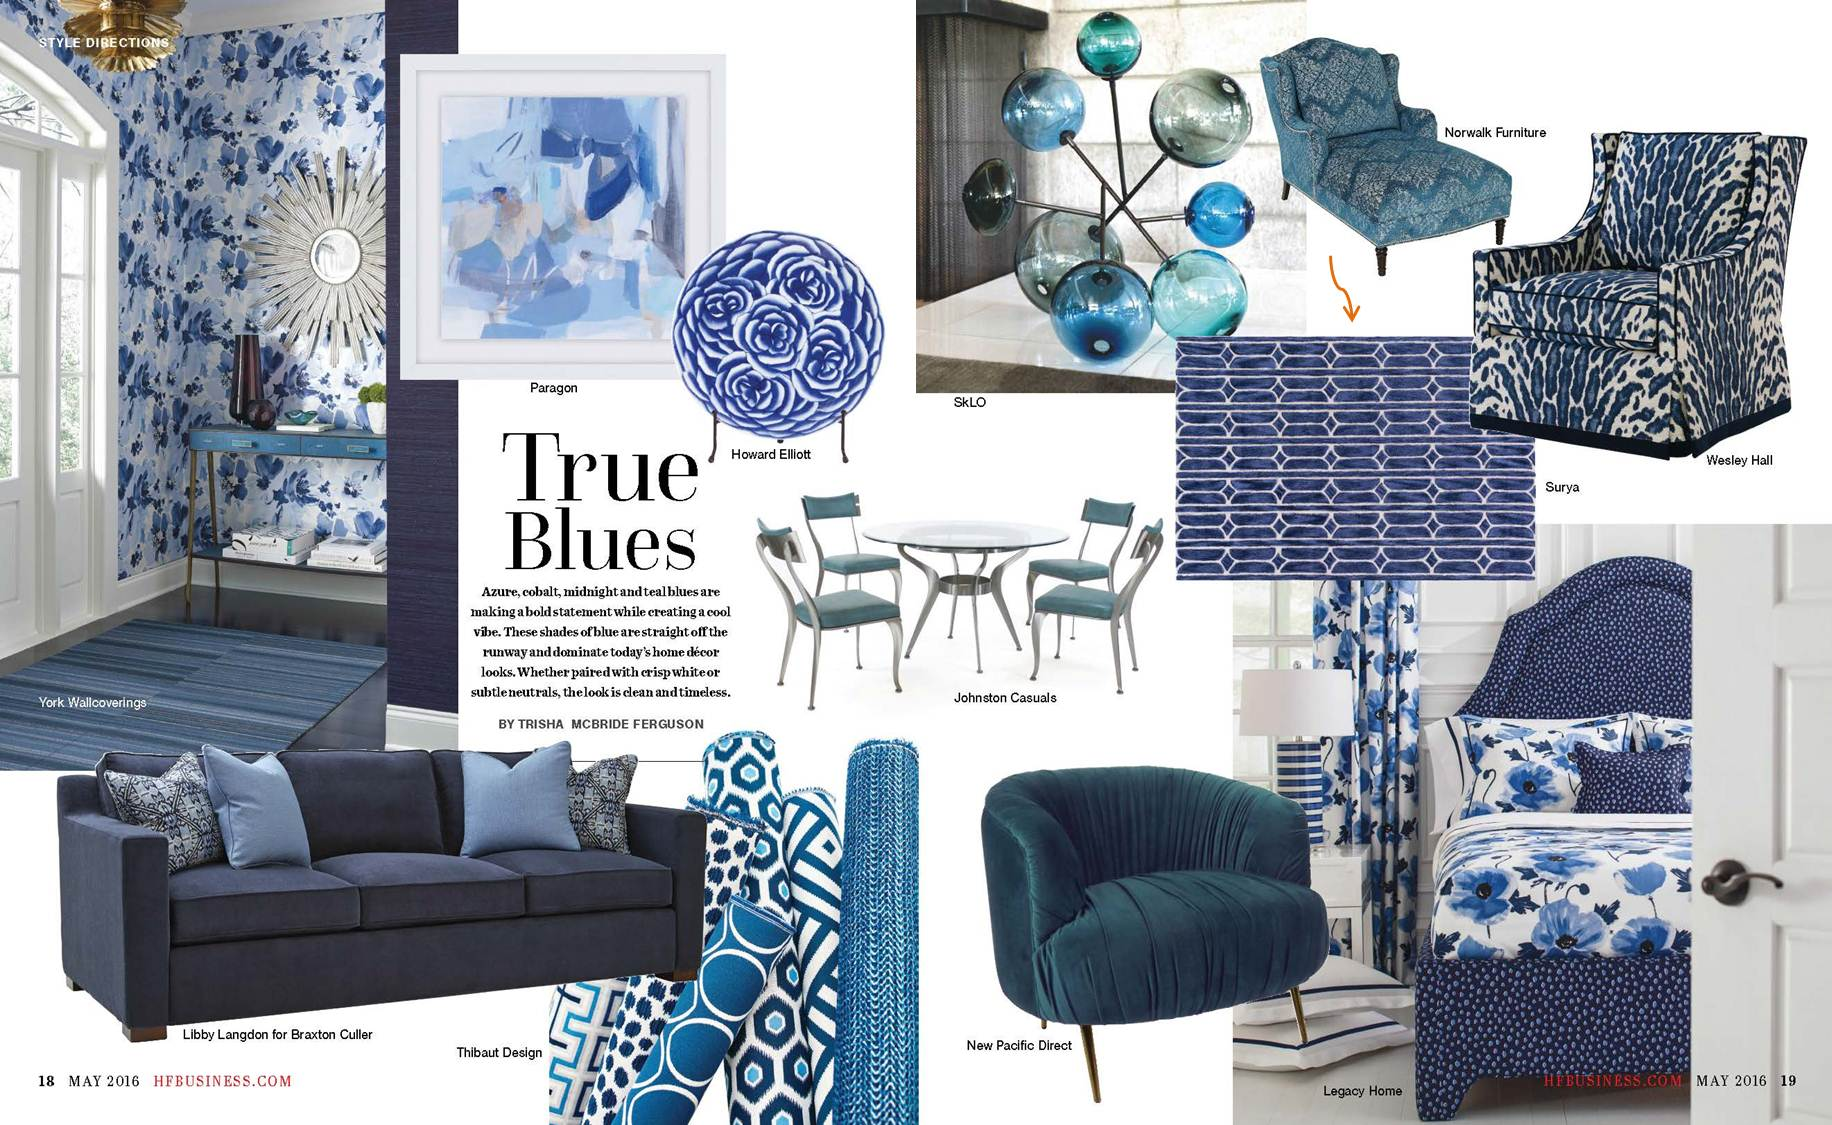 Surya S Richly Textured Alexandra Rug With A Modern Geometric Motif In Deep Indigo Hues Is Spotlighted This Color Story On Vibrant Blue Accessories That